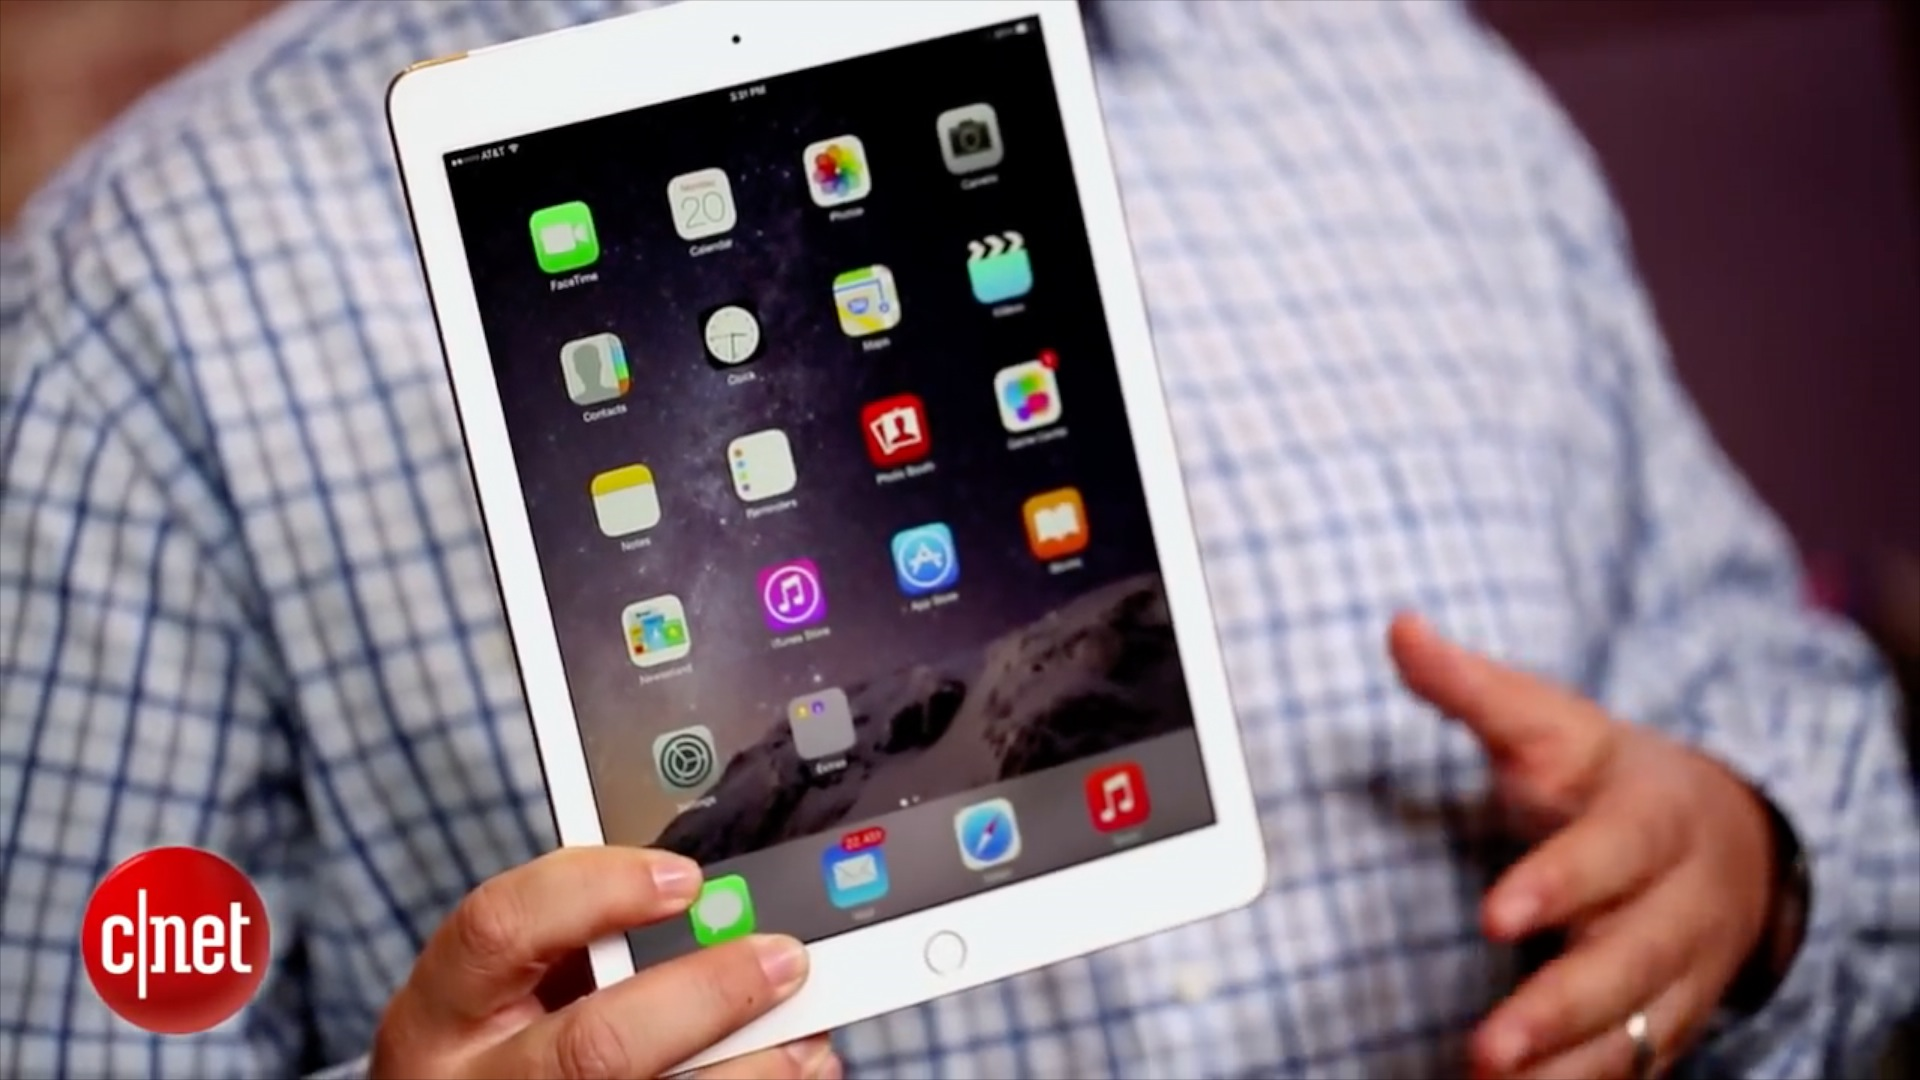 Video: How iOS 9 could save the iPad